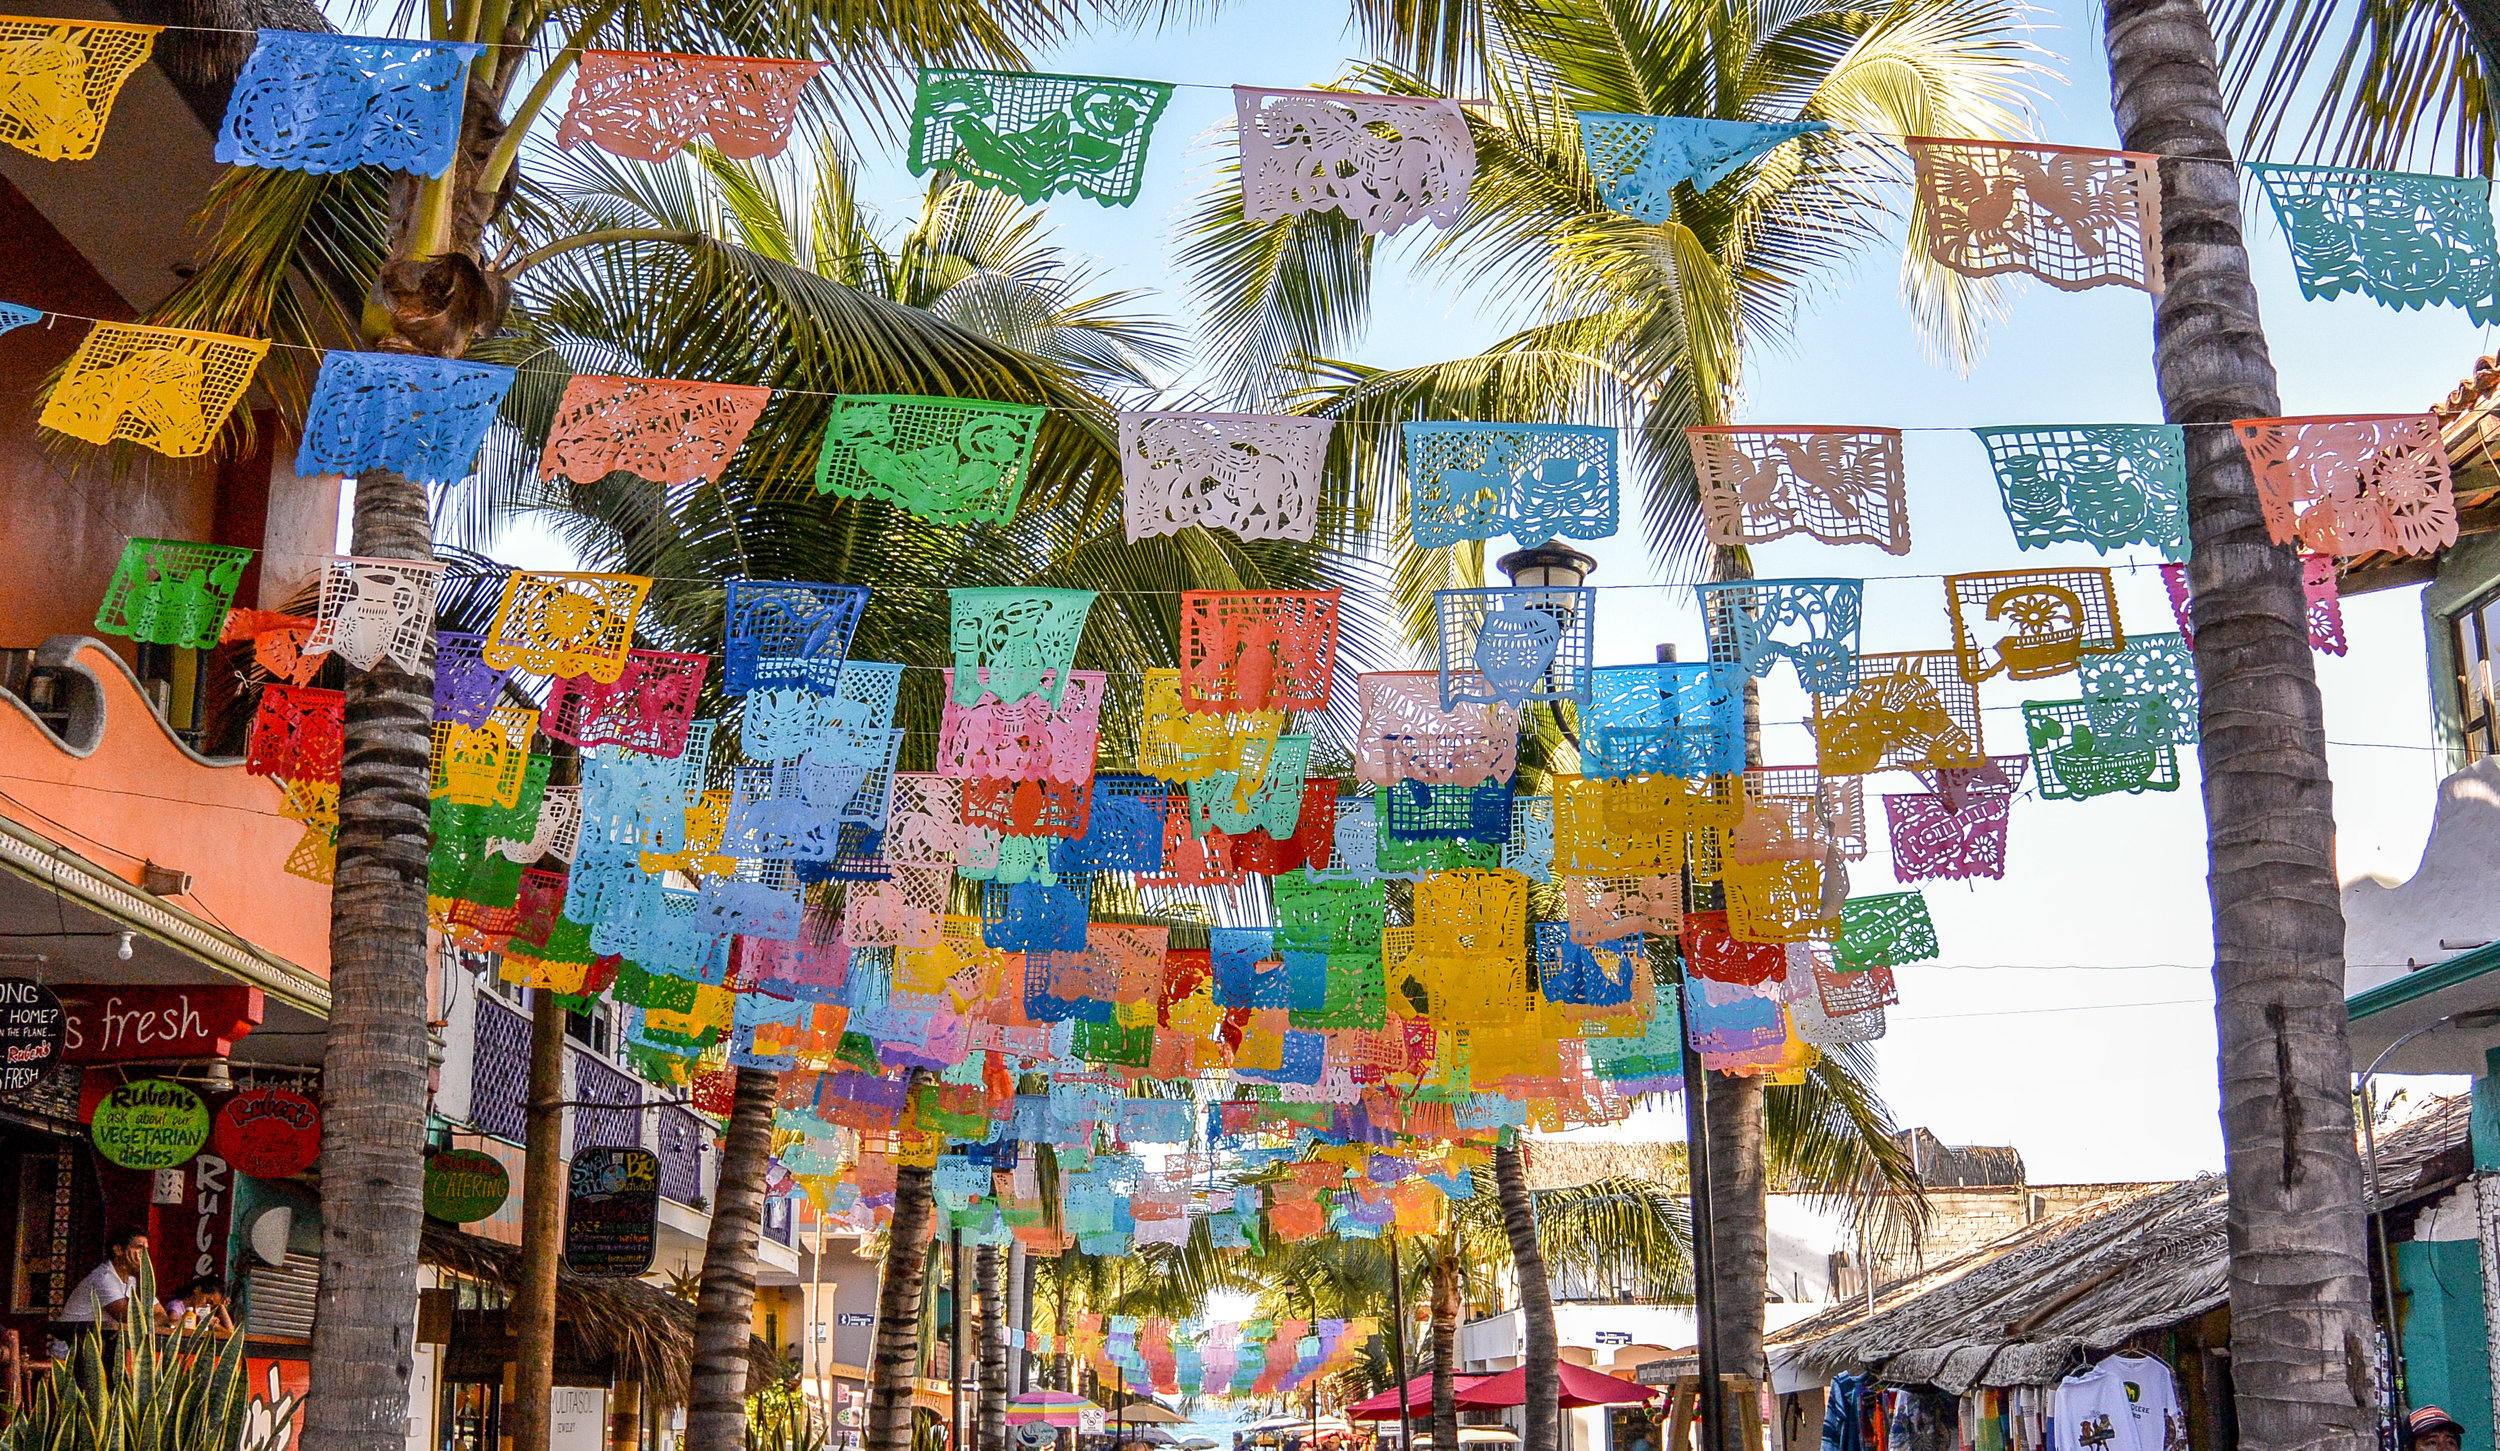 Colourful banners in Sayulita, Mexico